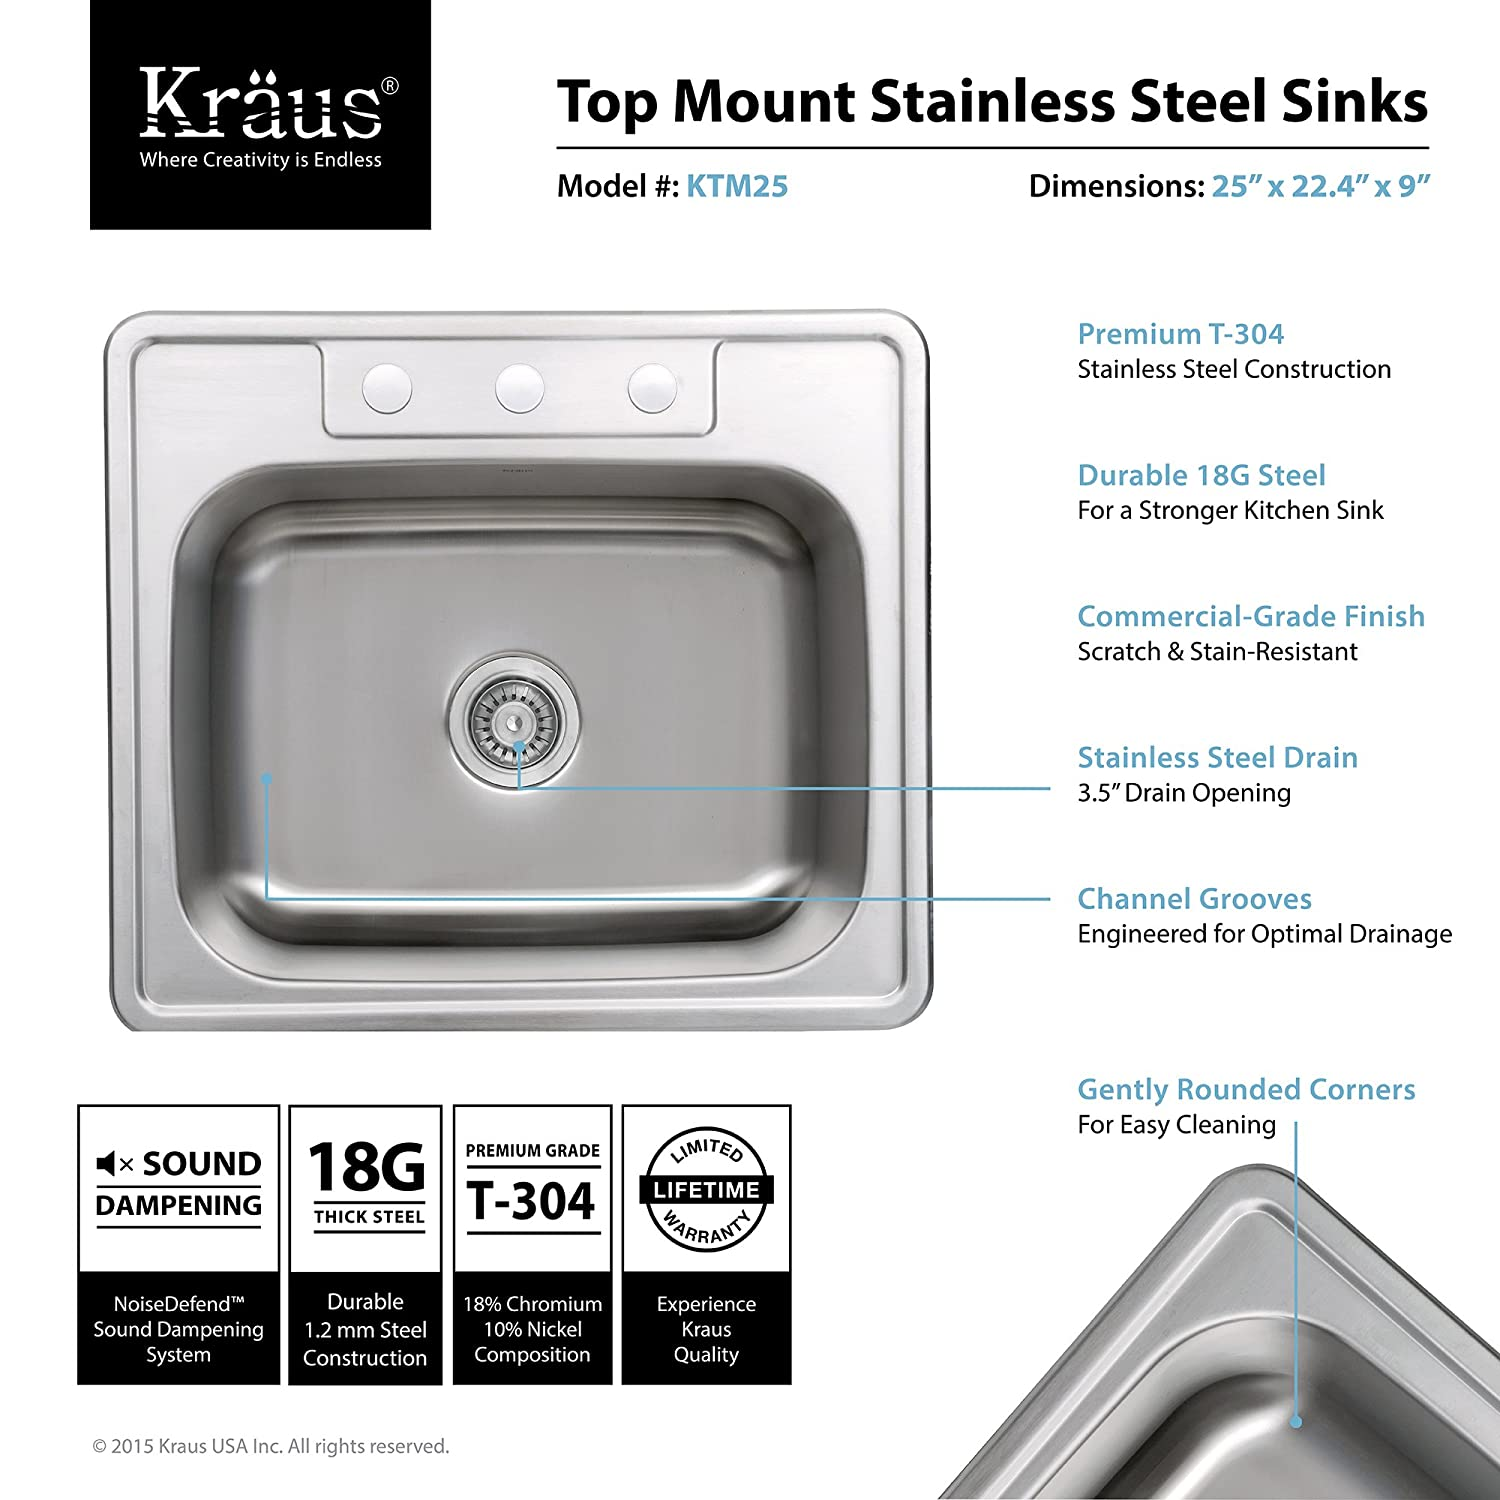 Kitchen sink dimensions - Kraus Ktm25 25 Inch Topmount Single Bowl 18 Gauge Stainless Steel Kitchen Sink Double Bowl Sinks Amazon Com